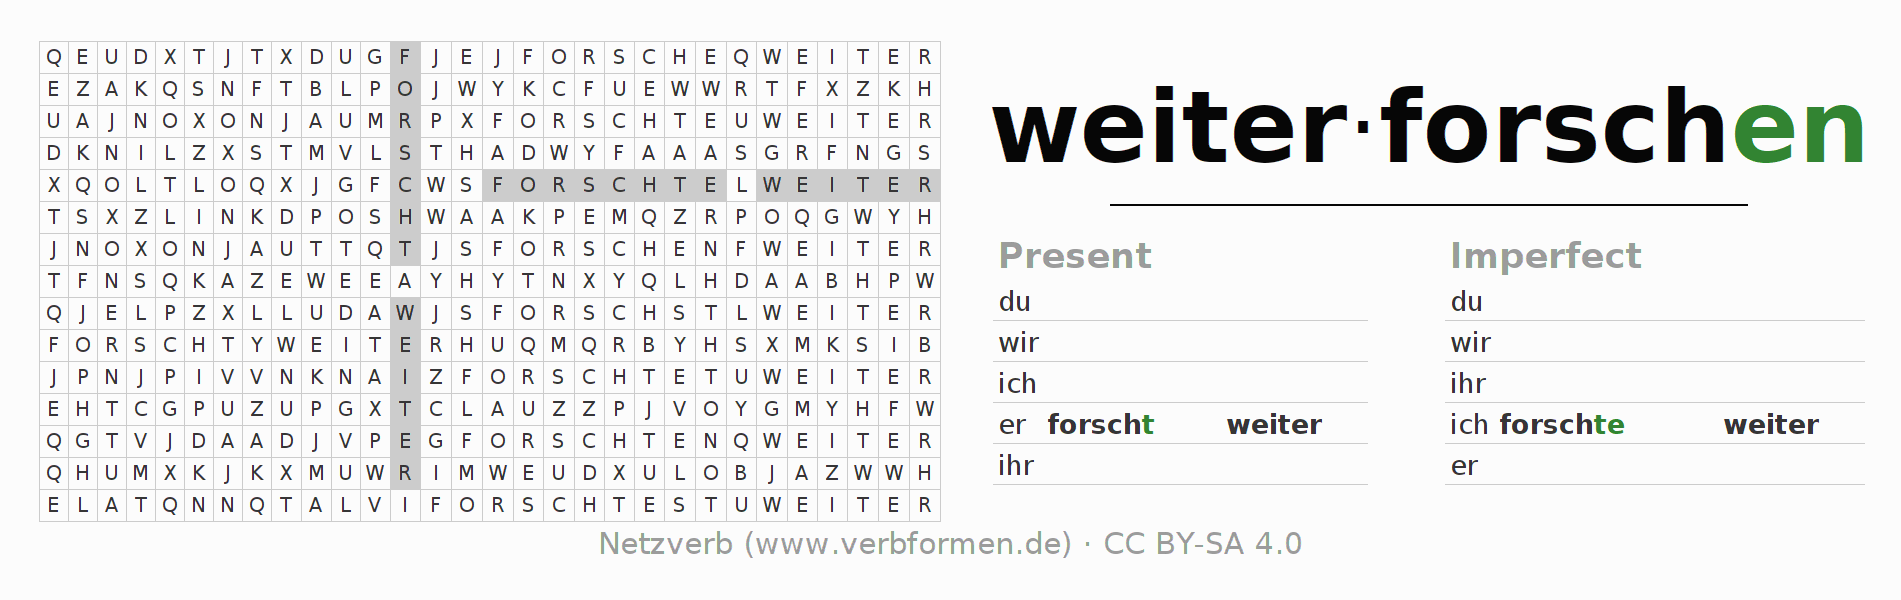 Word search puzzle for the conjugation of the verb weiterforschen